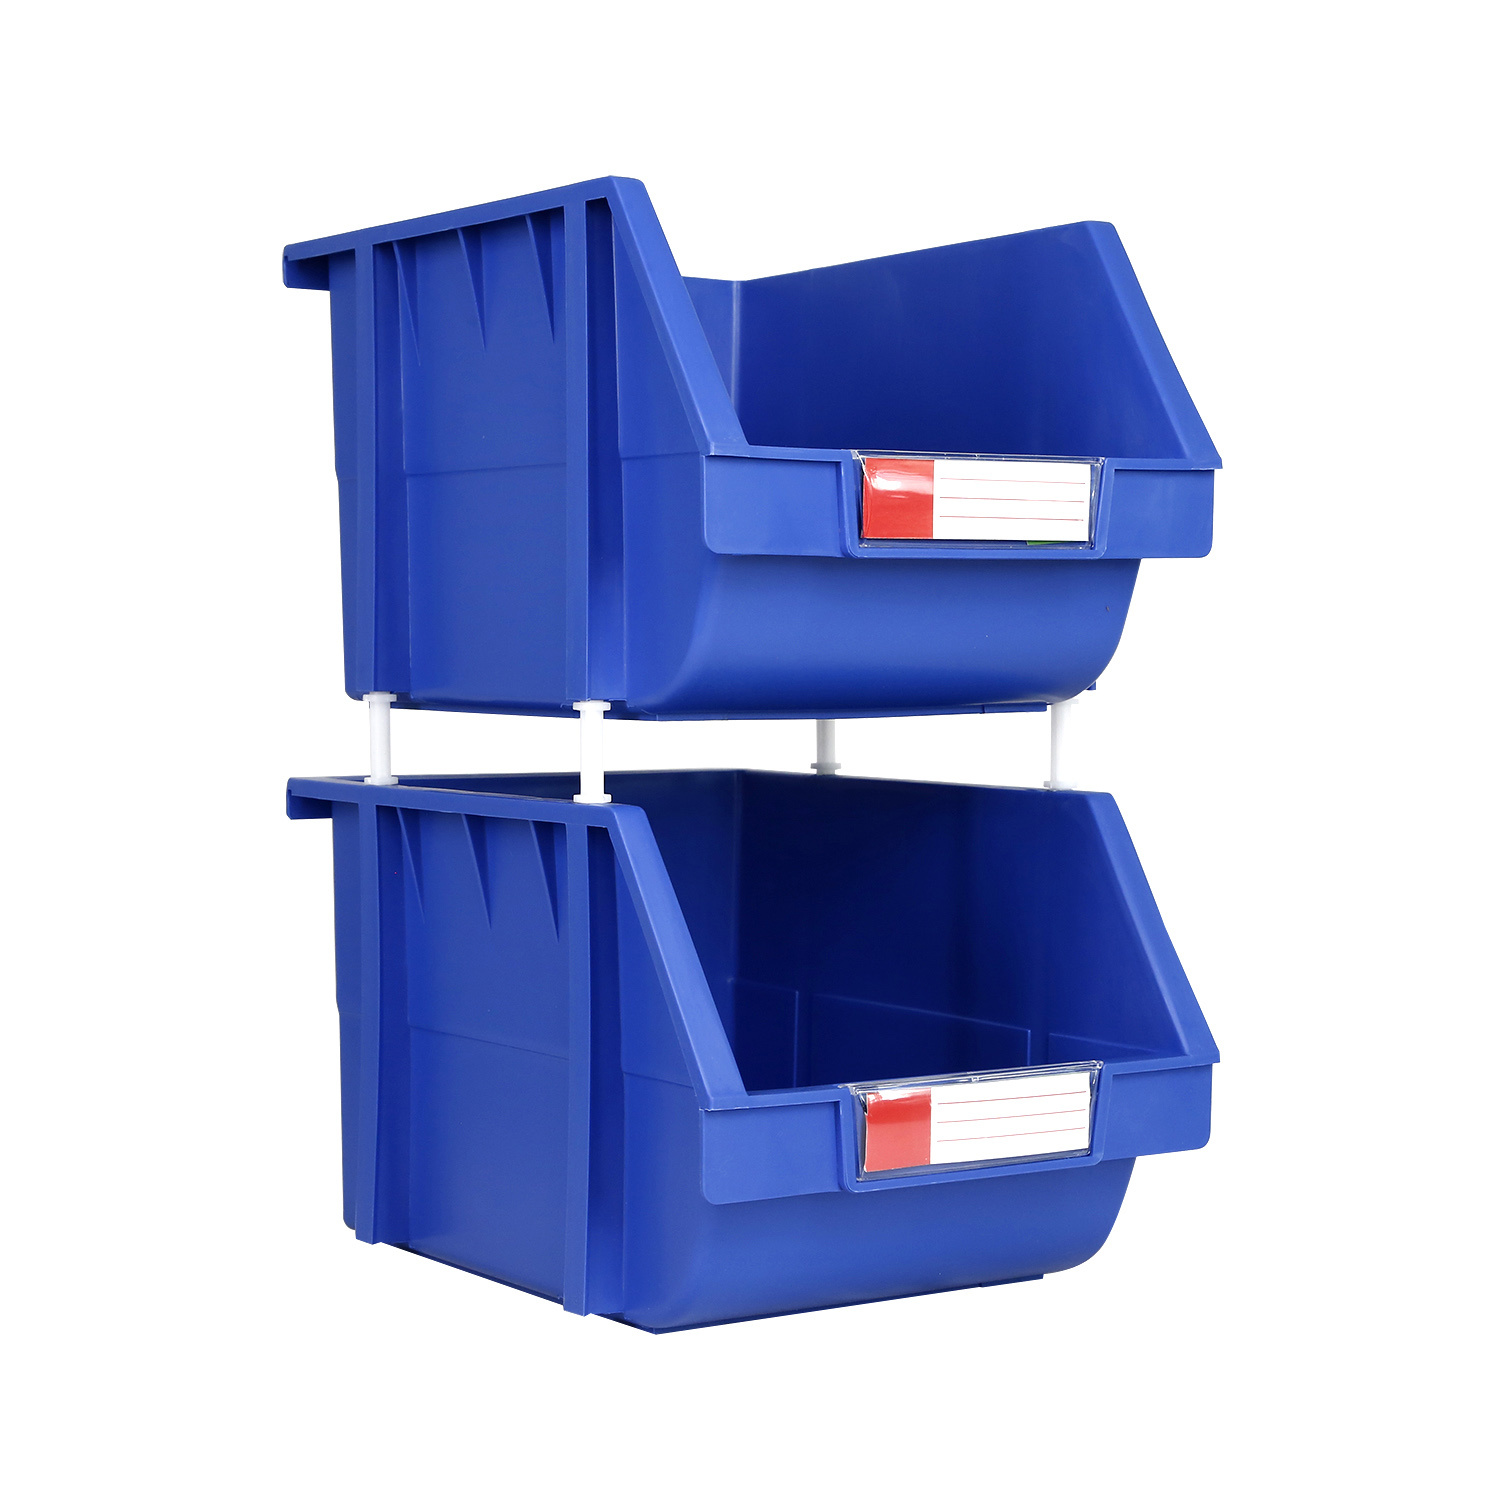 China Stackable Storage Box Stacking Storage Bins Large Plastic Totes China Plastic Stackable Bin Stackable Plastic Storage Bins